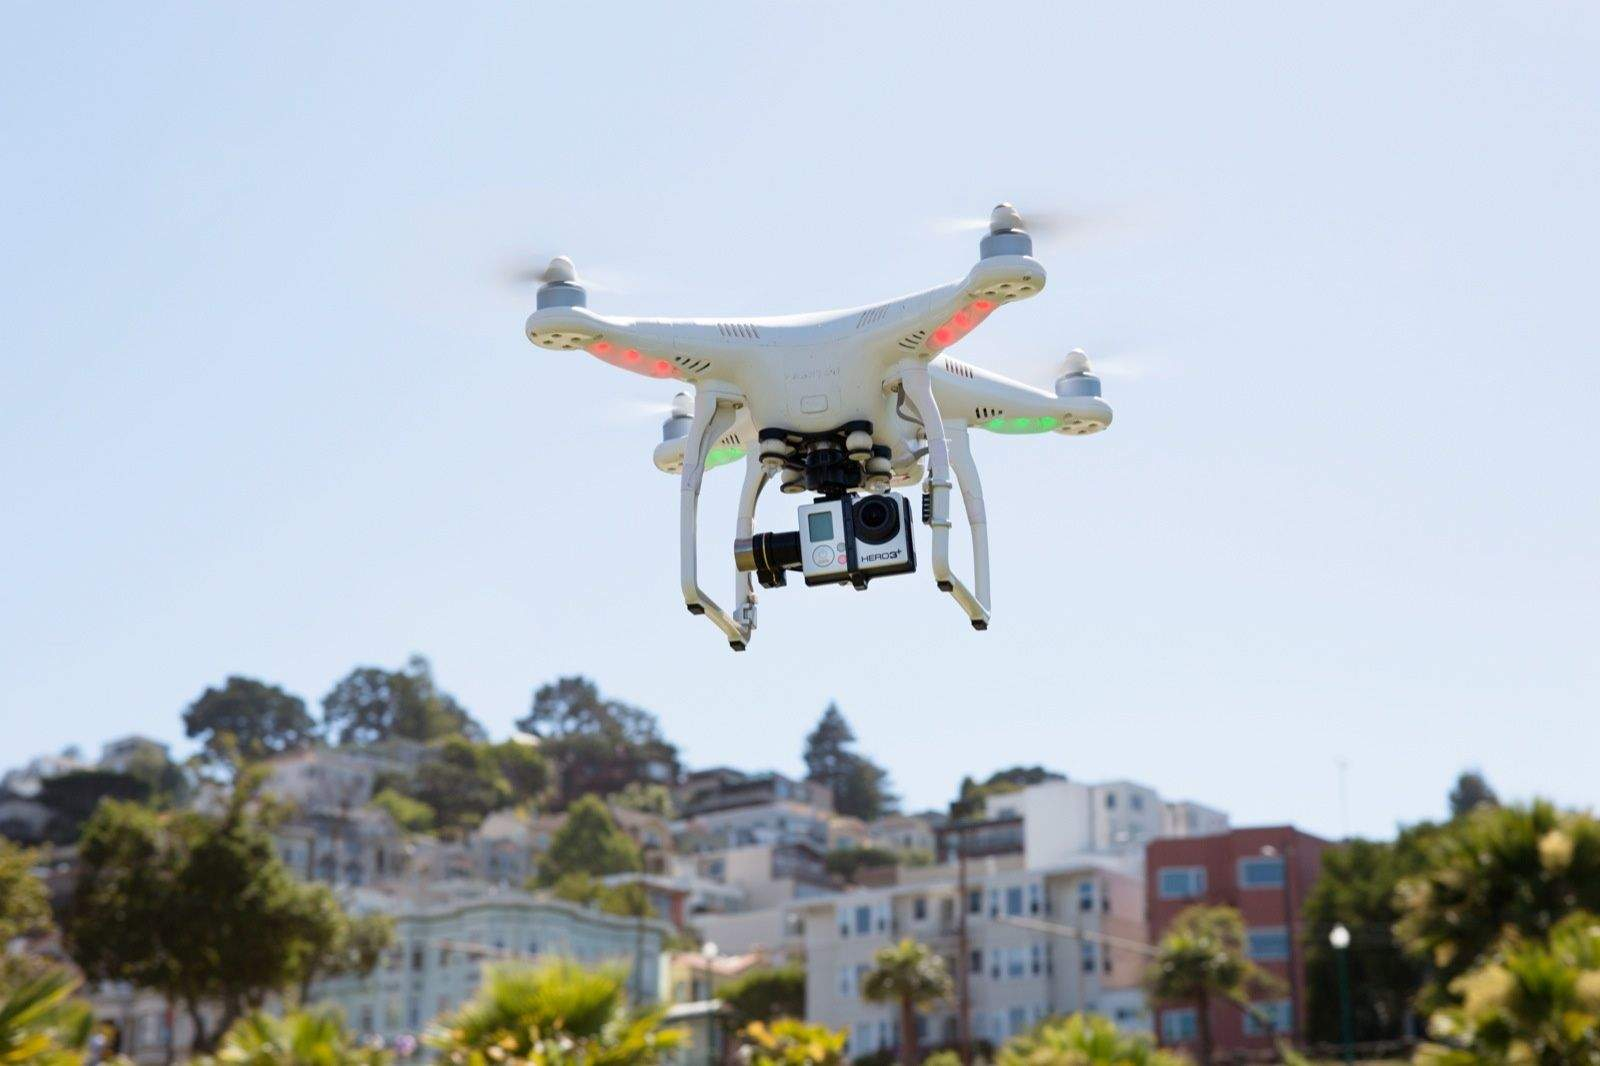 Drones and HD cameras are affordable, giving everyone a chance to make beautiful, cinematic video.